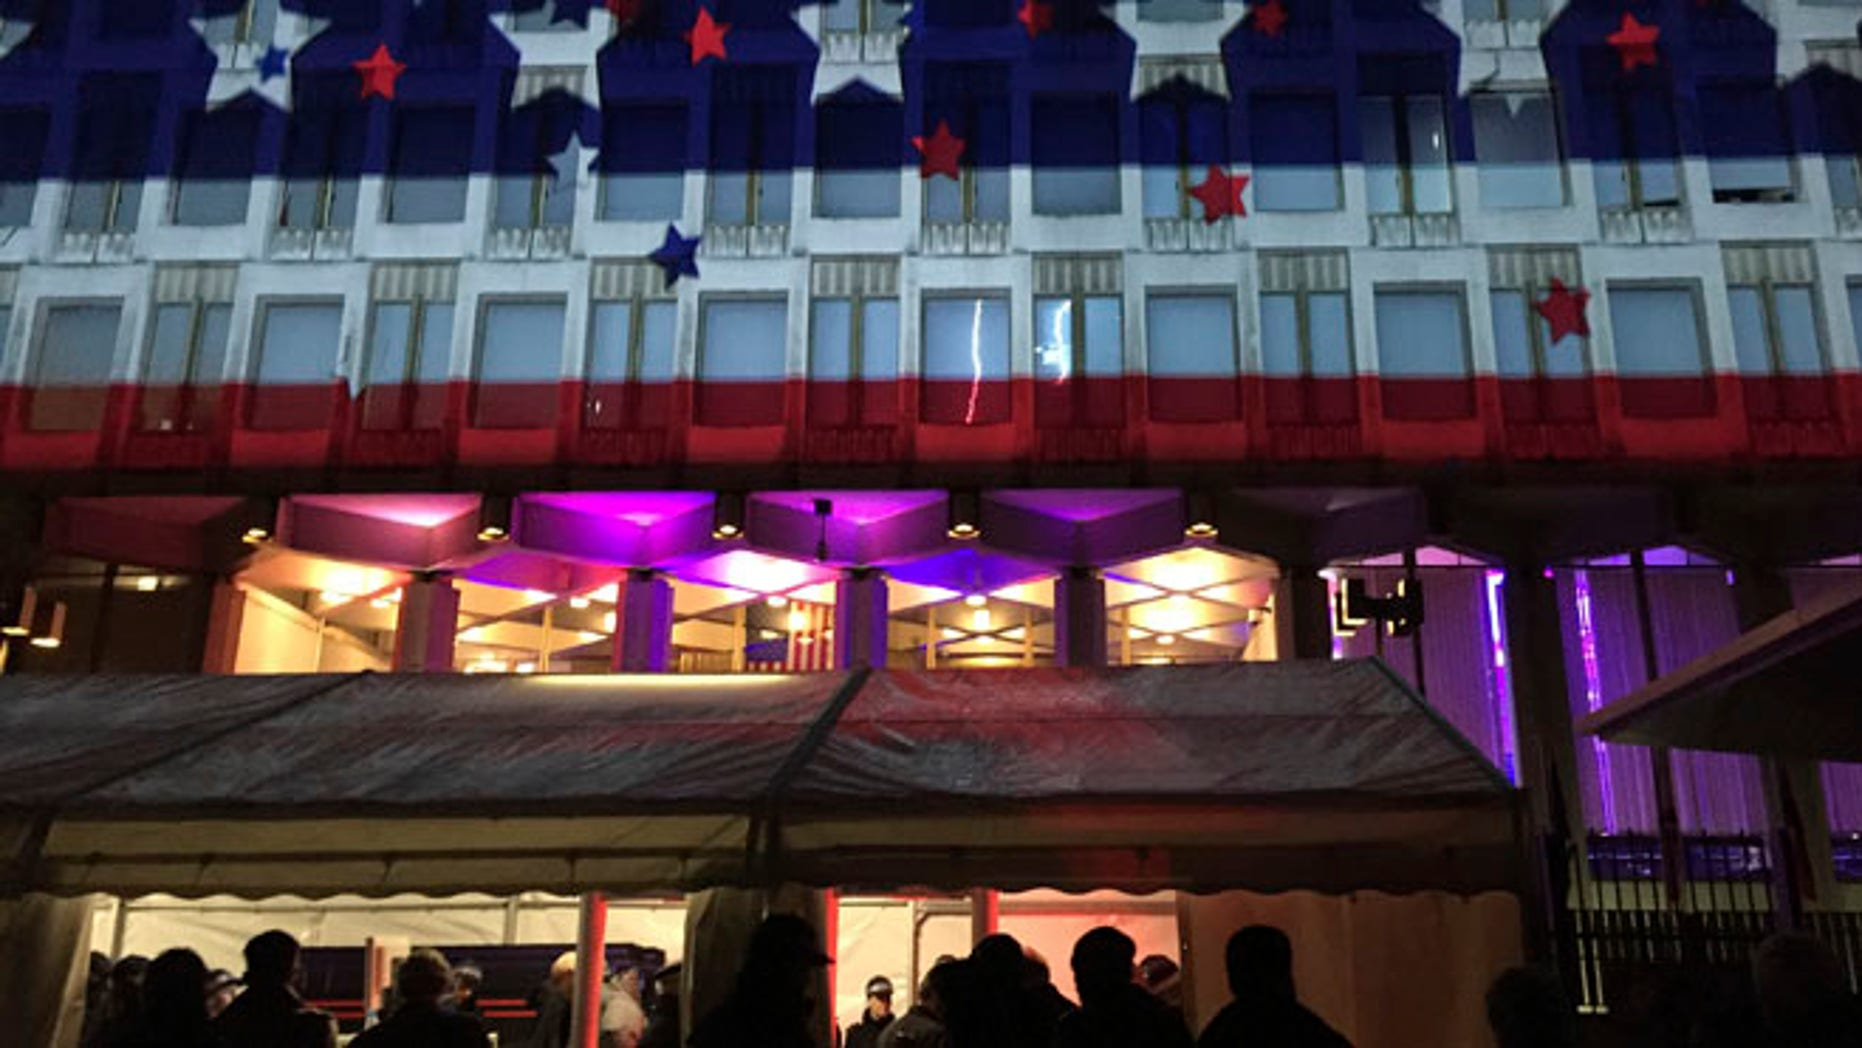 People queue outside for an Election Night Party at The United States Embassy, in London, Tuesday, Nov. 8, 2016. The US headed for the polls to vote for their new president. (AP Photo/Frank Augstein)